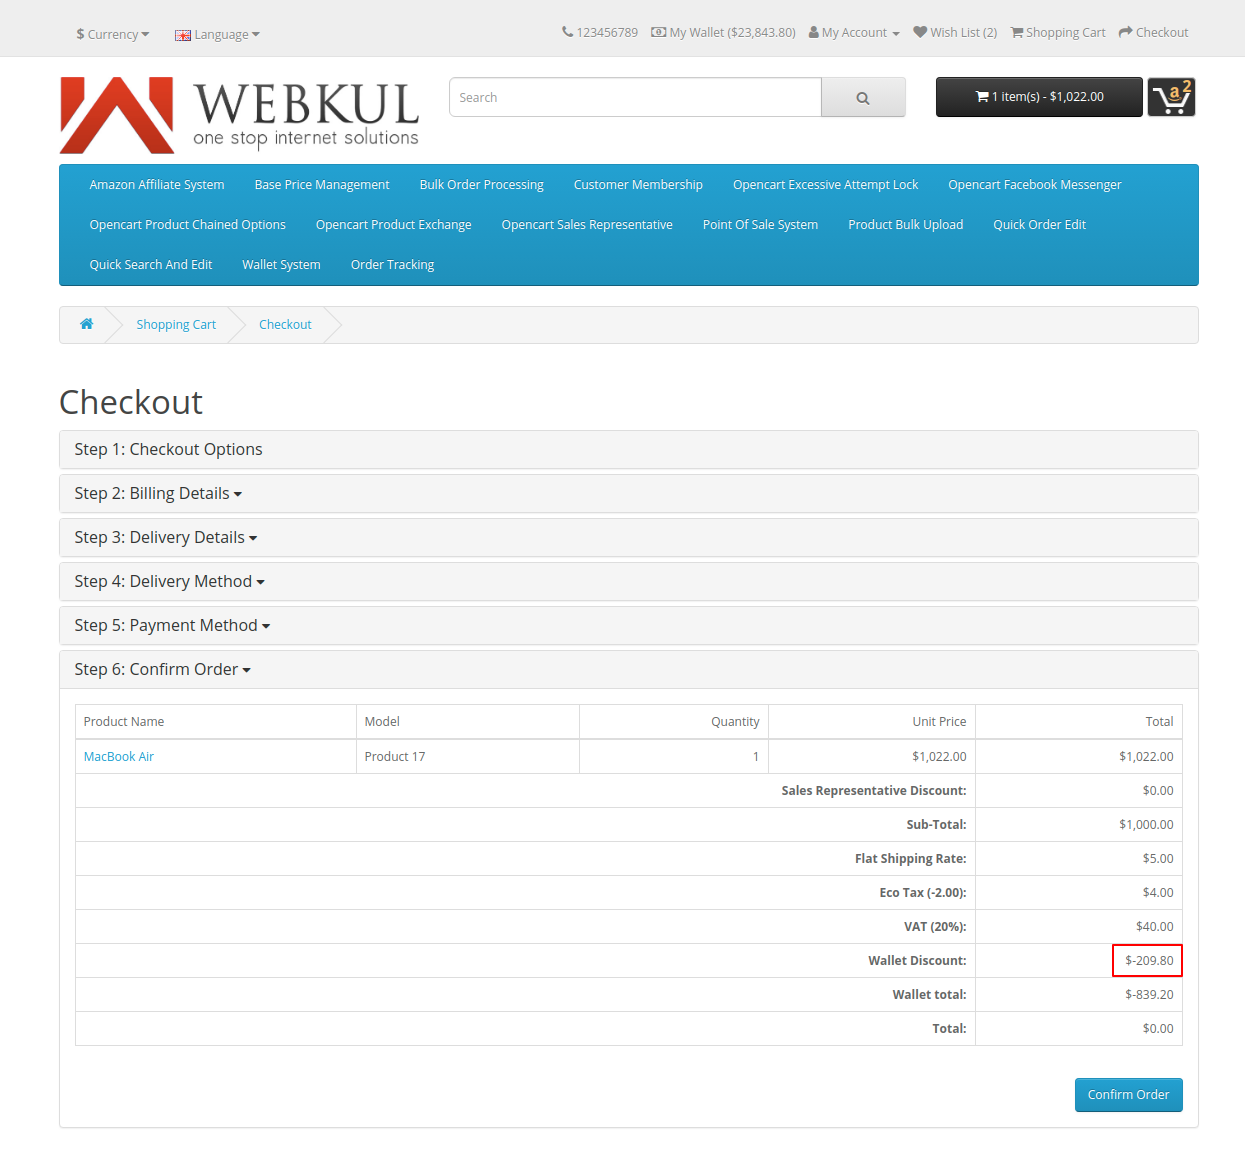 webkul-opencart-wallet-system-sub-total-discount-1